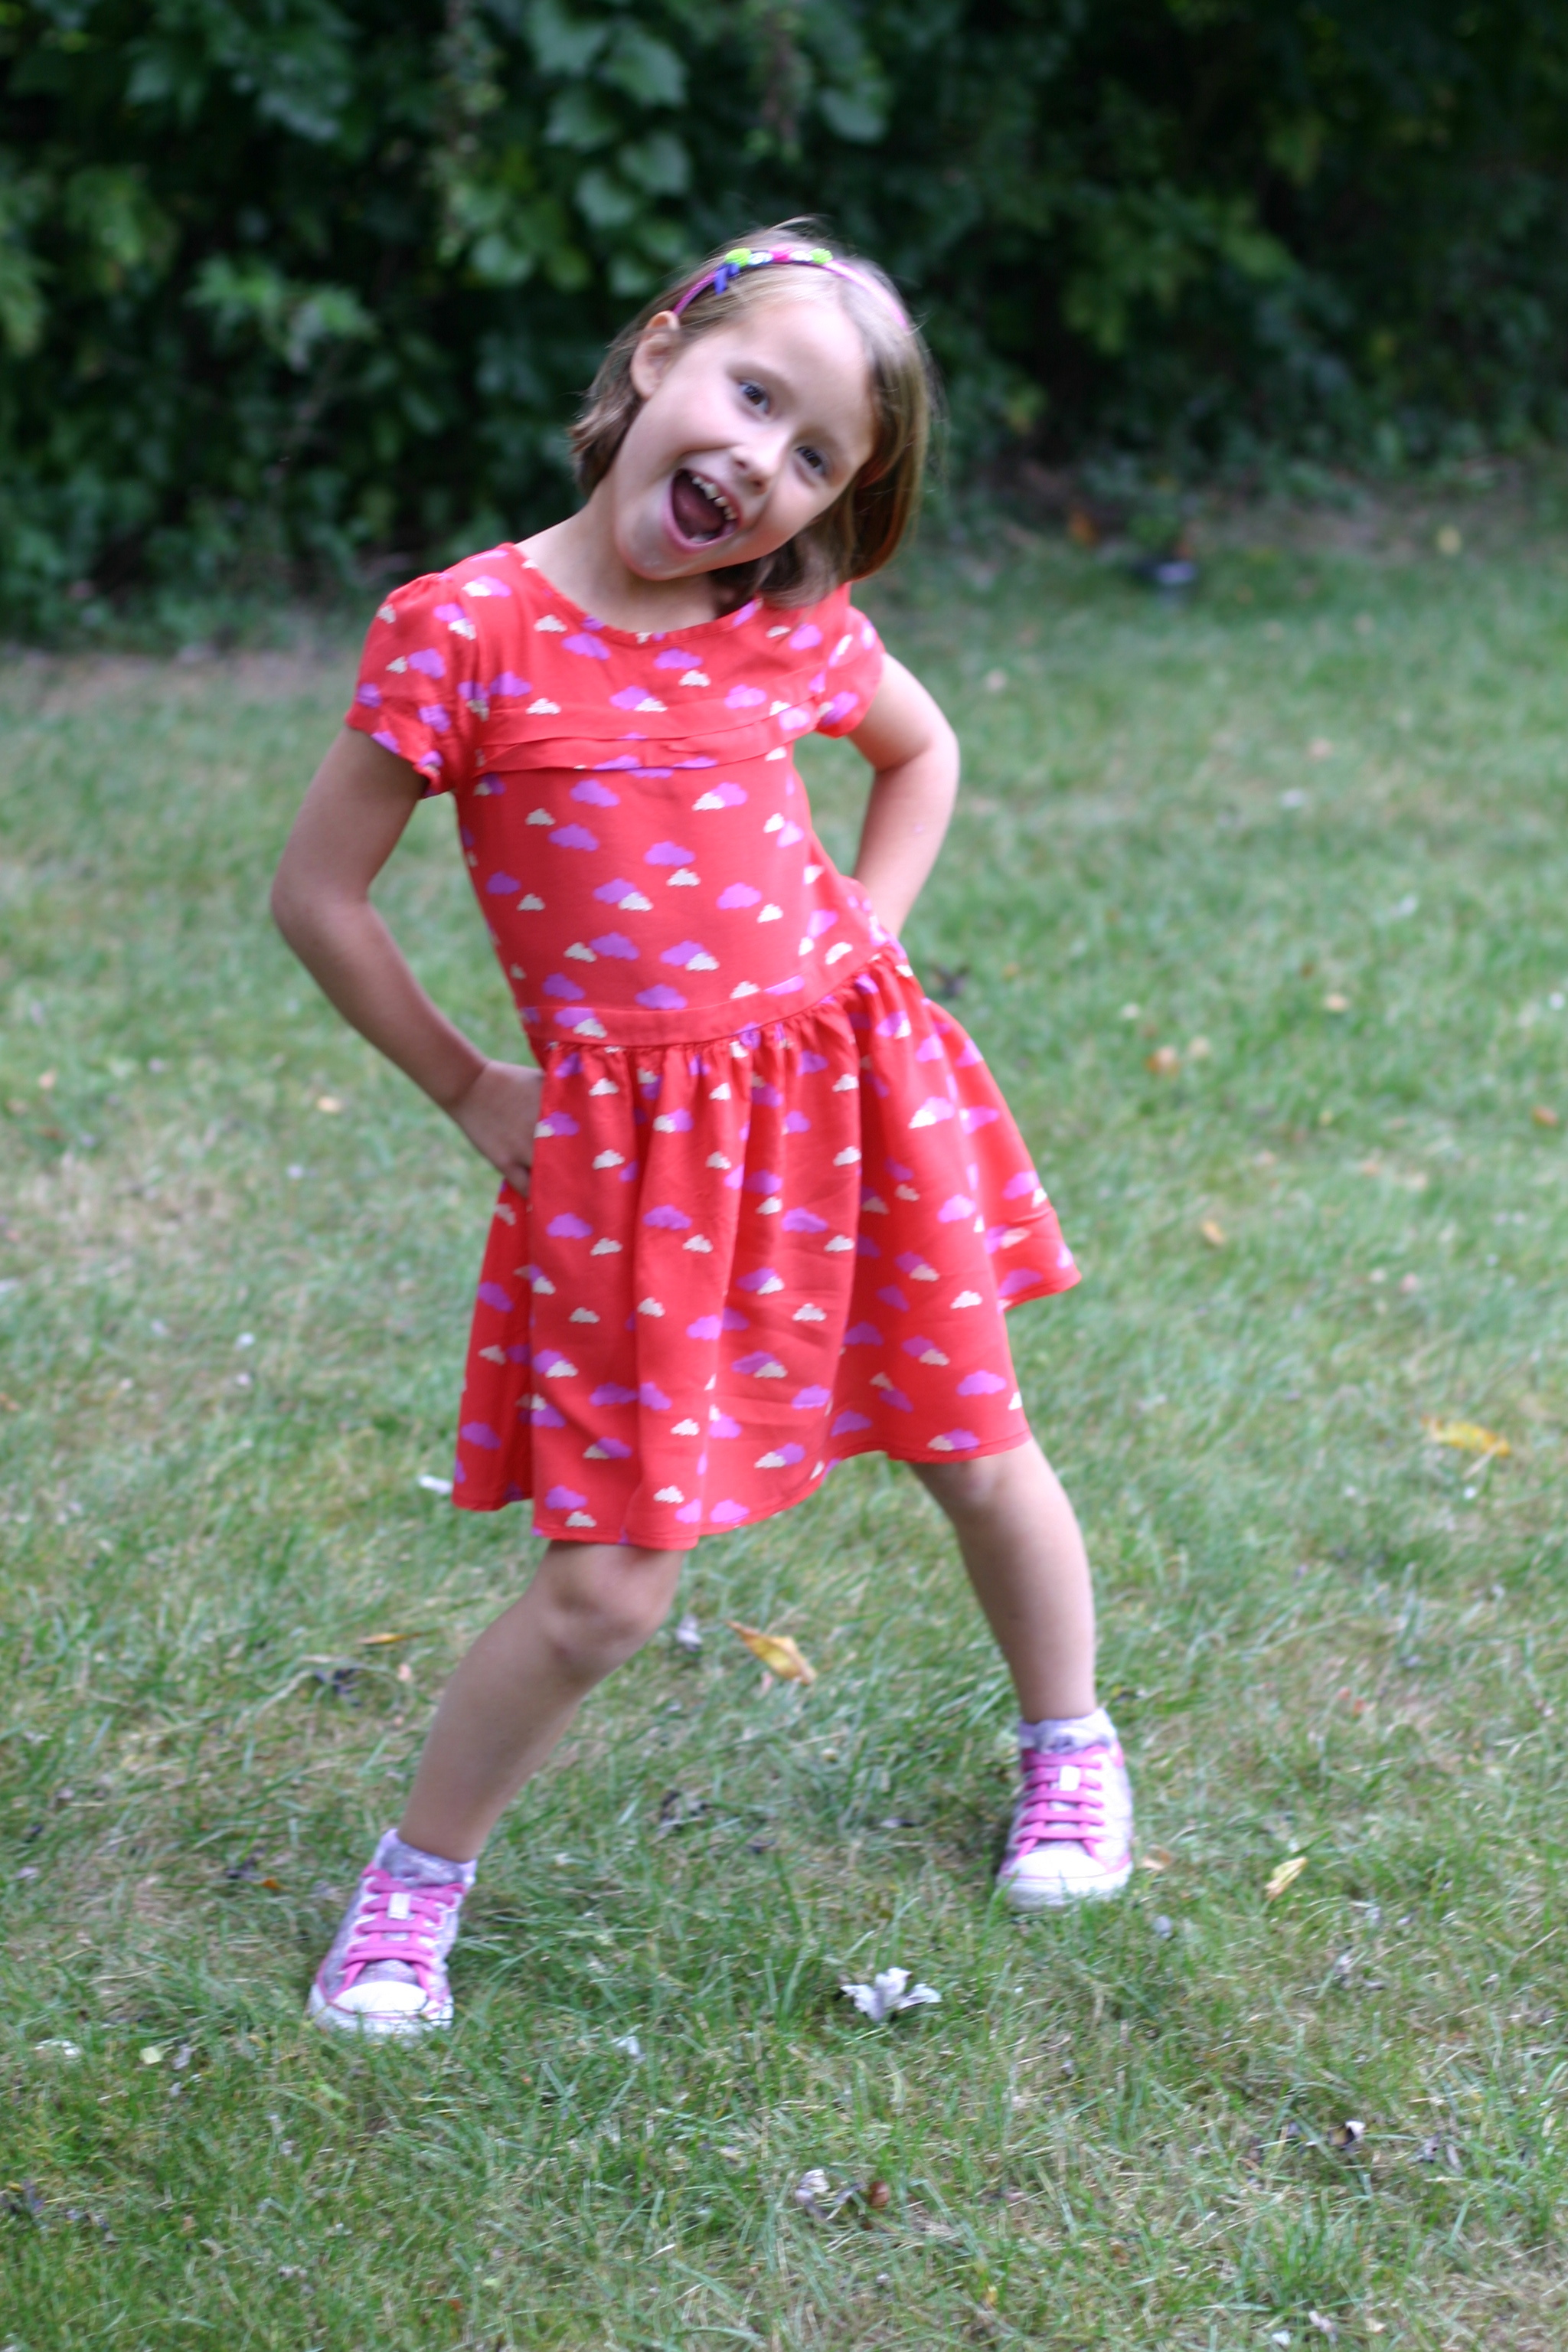 Next Direct - Fabulous Kids Clothing Review Plus Free ... - photo#15